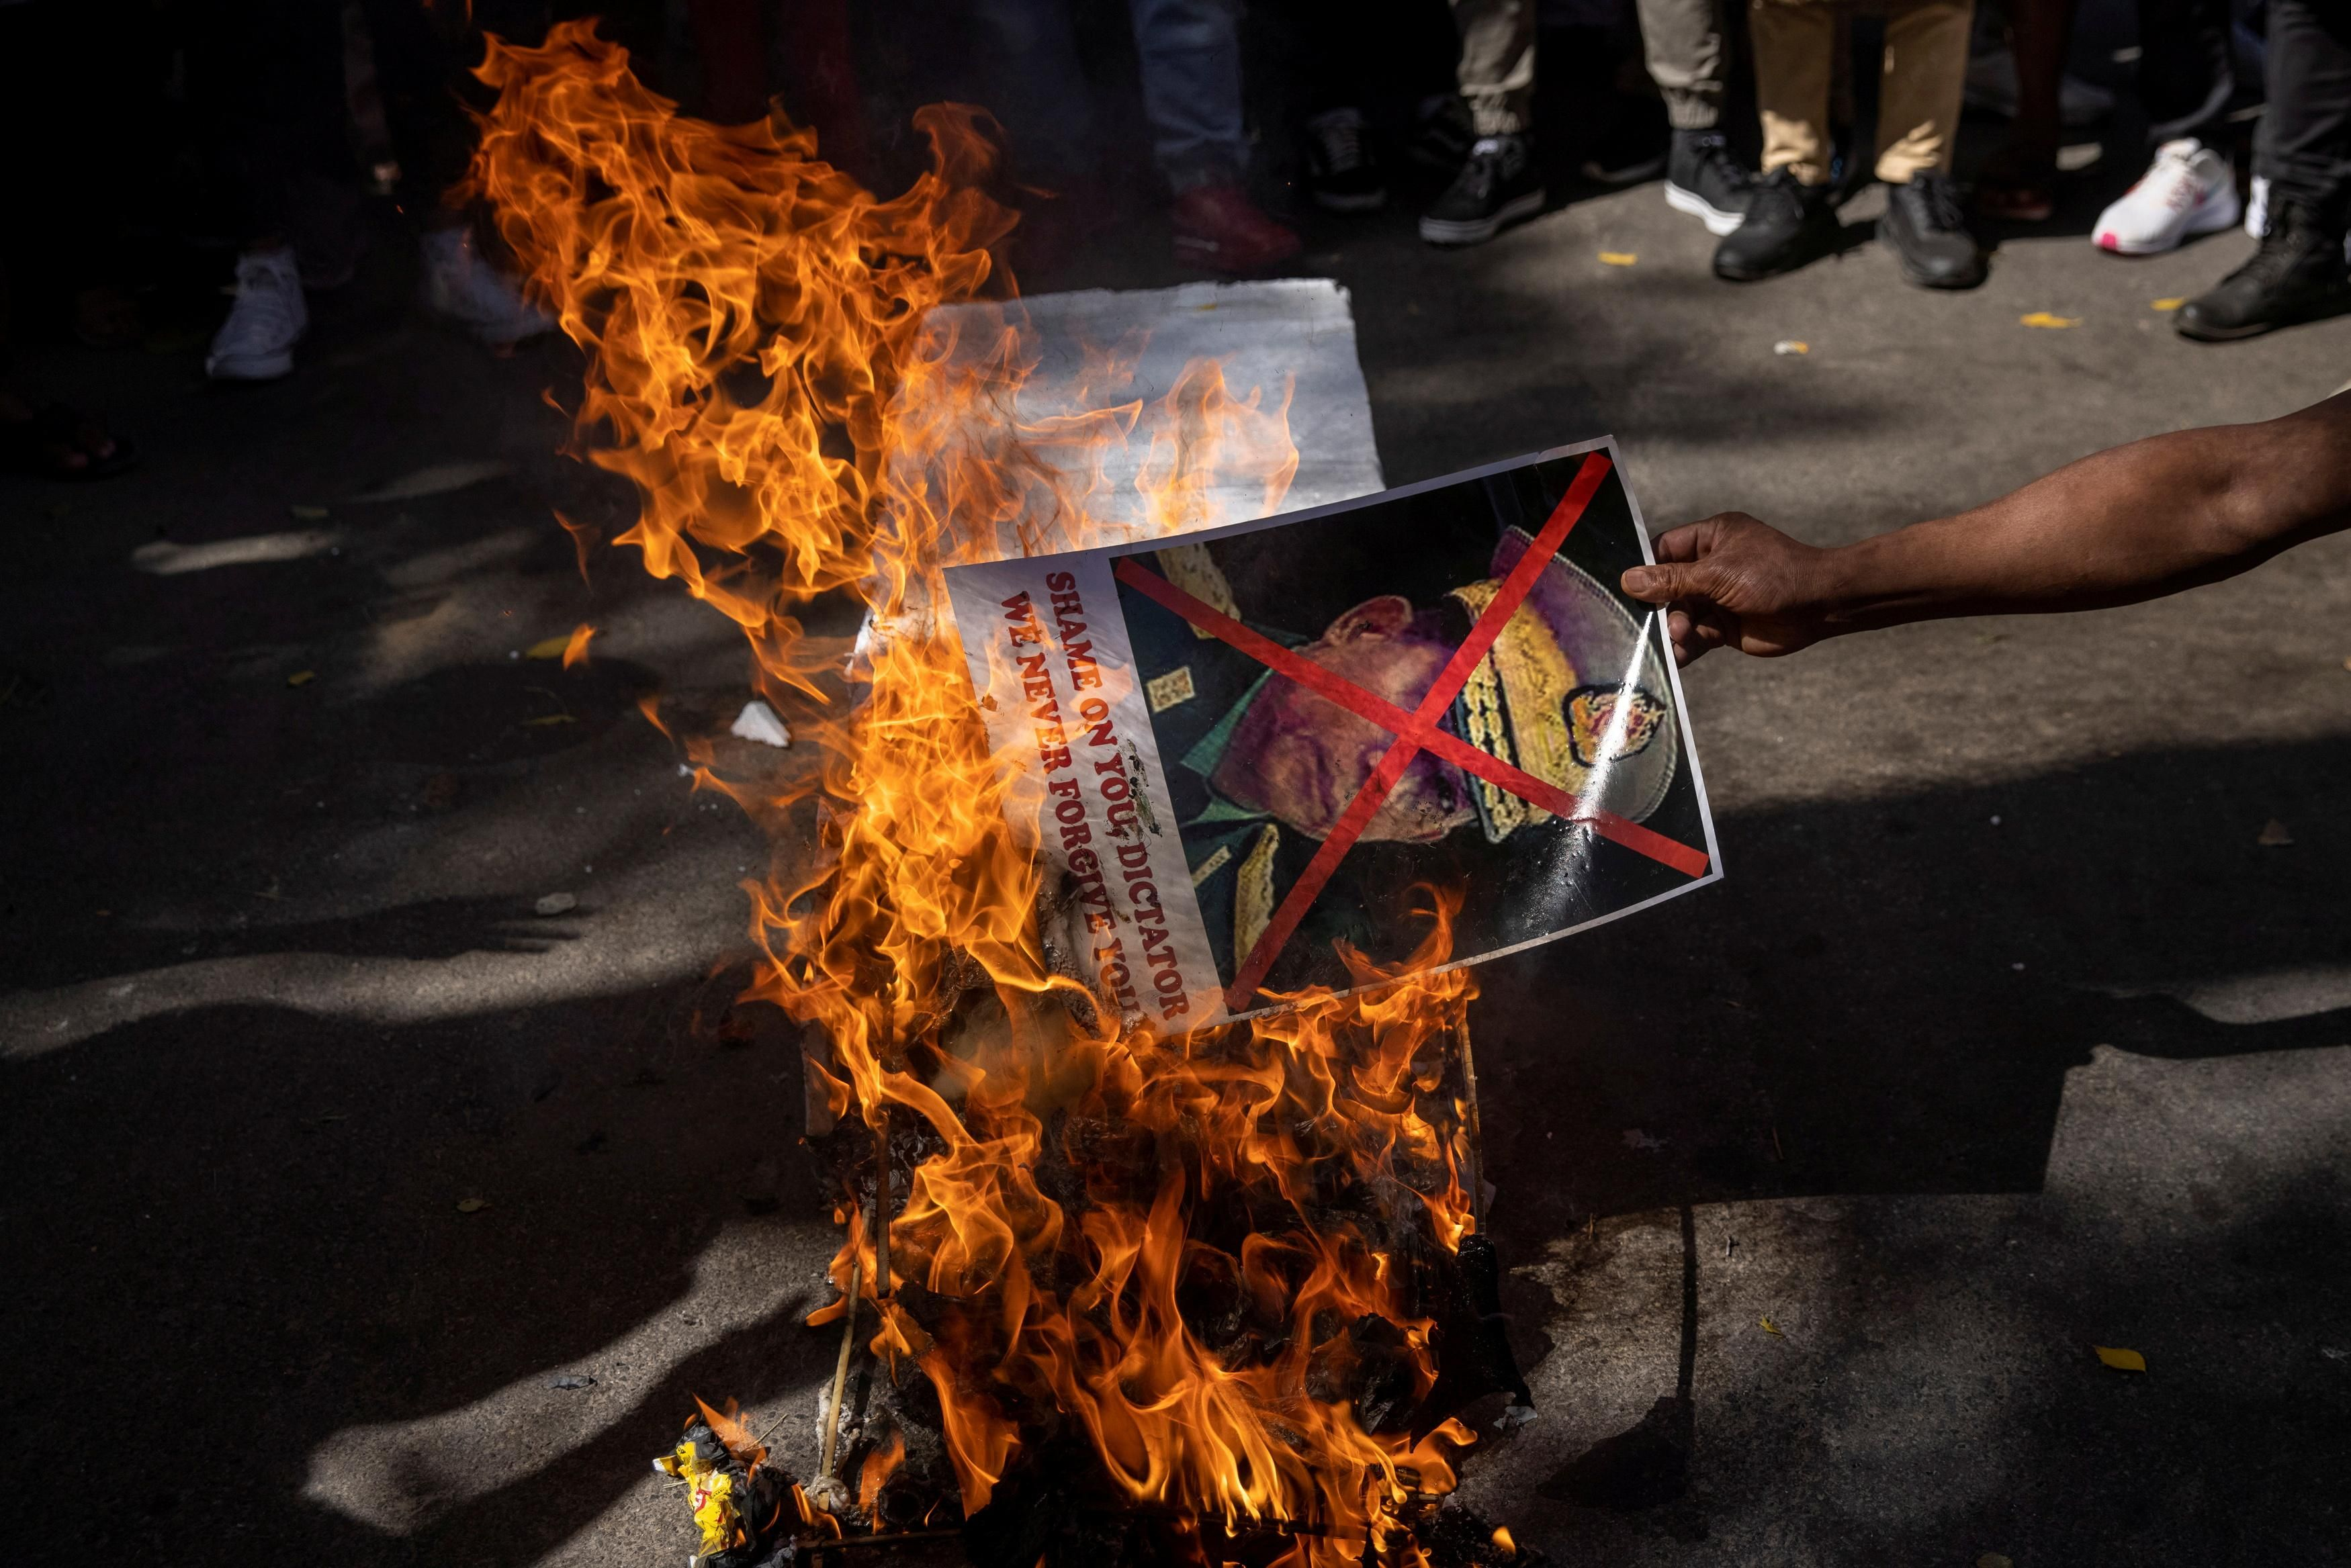 A Myanmar citizen living in India burns a poster of Myanmar's army chief Senior General Min Aung Hlaing with his face crossed out, during a protest organised by Chin Refugee Committee, against the military coup in Myanmar, in New Delhi, India, March 3, 2021.